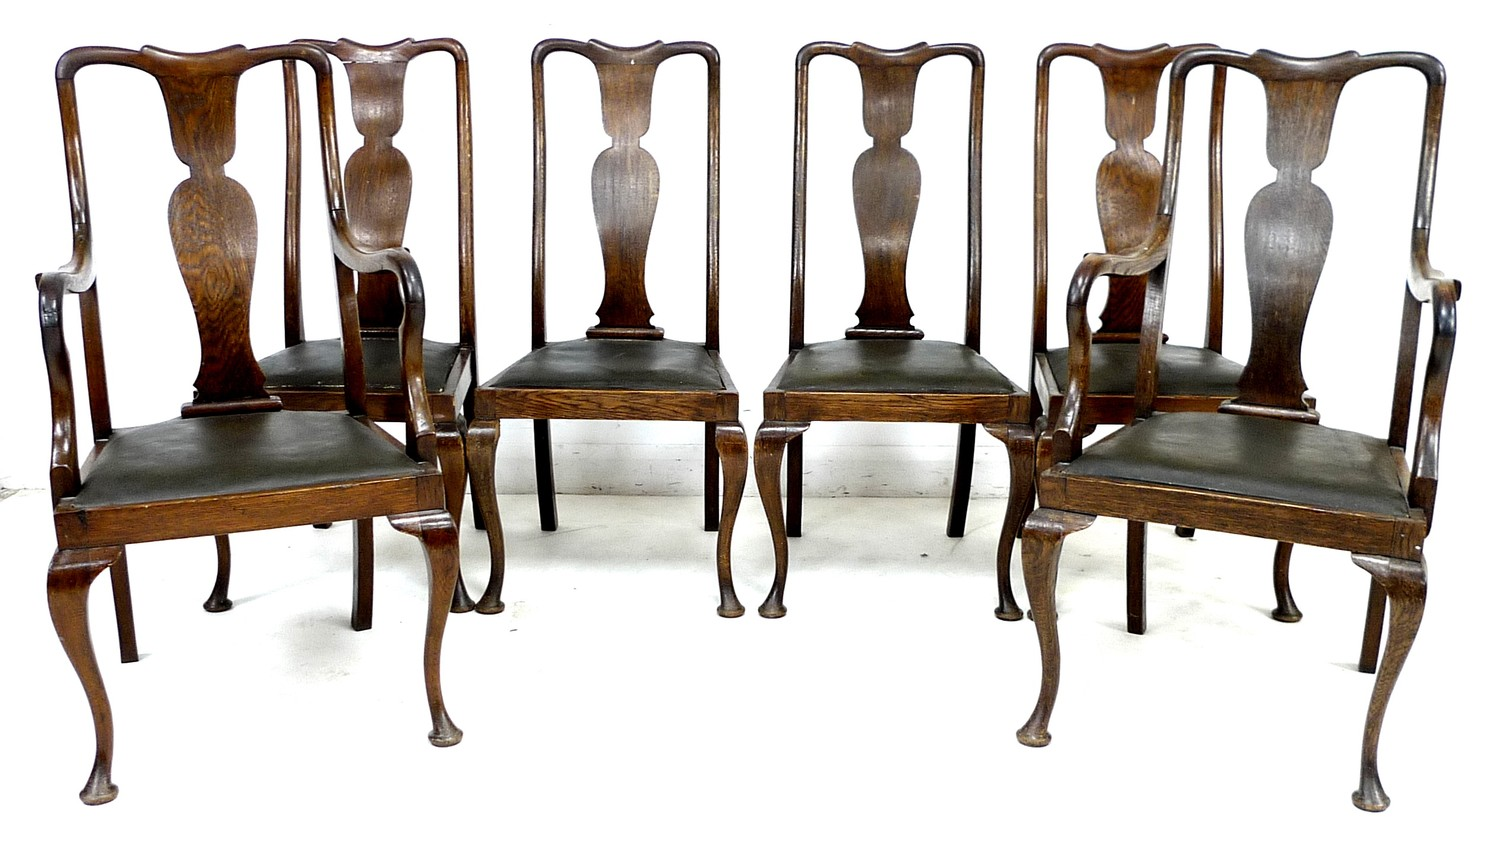 A set of six early 20th century oak dining chairs, 52 by 55 by 106cm high, in Queen Anne style